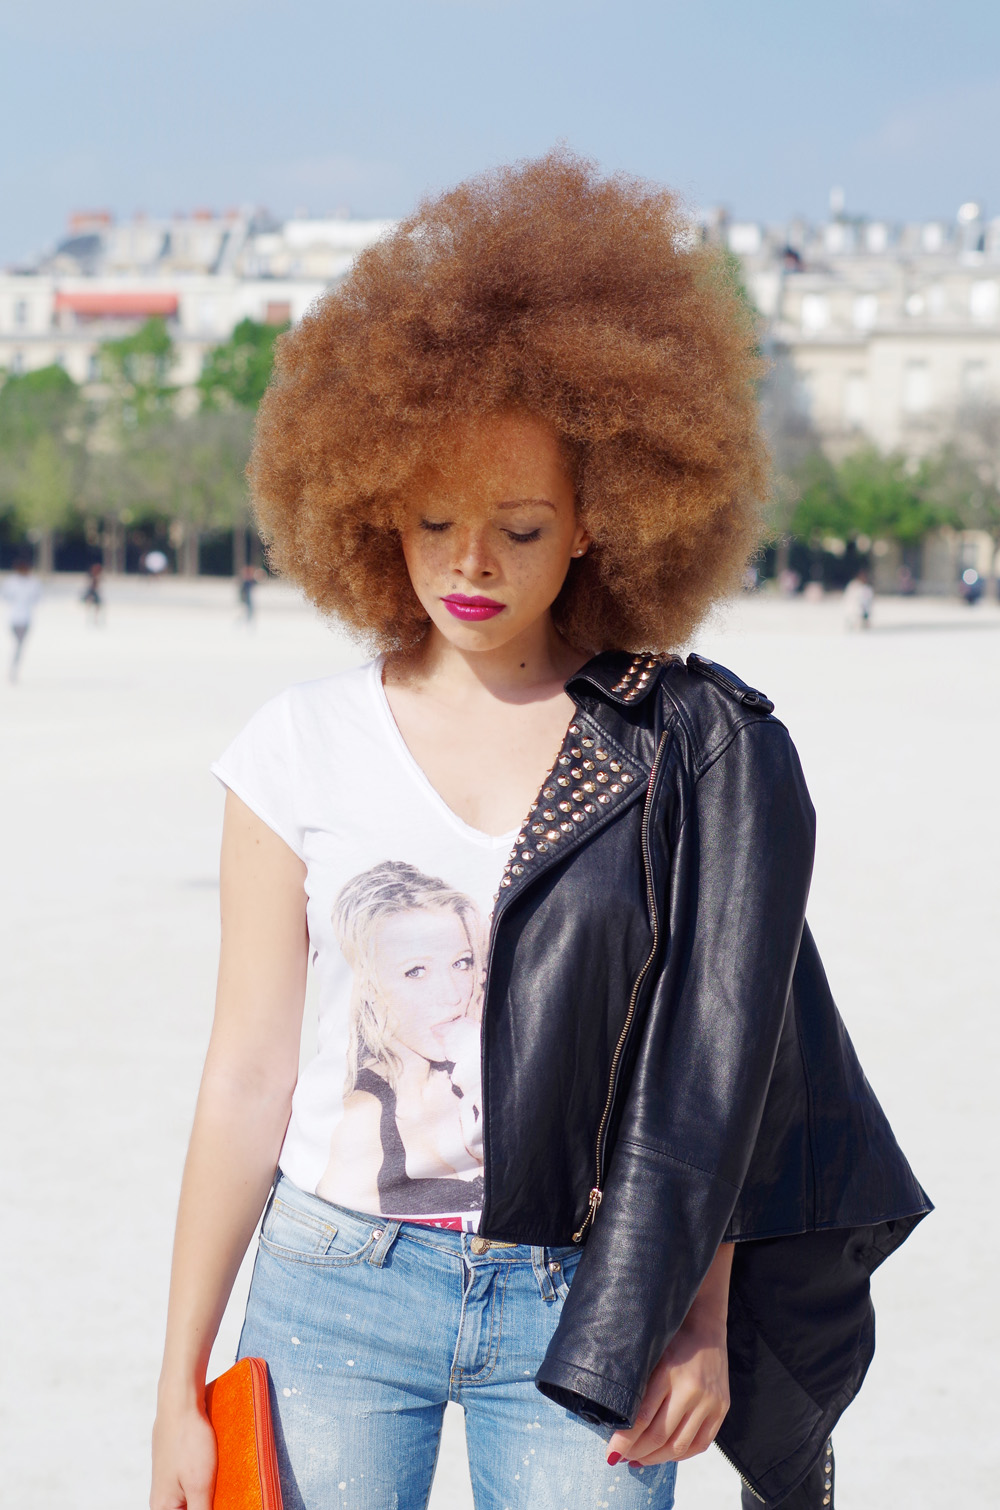 fatimayarie-afro-redhair-freckles-fashionblog-leatherjacket-paris-asos-imgp9265